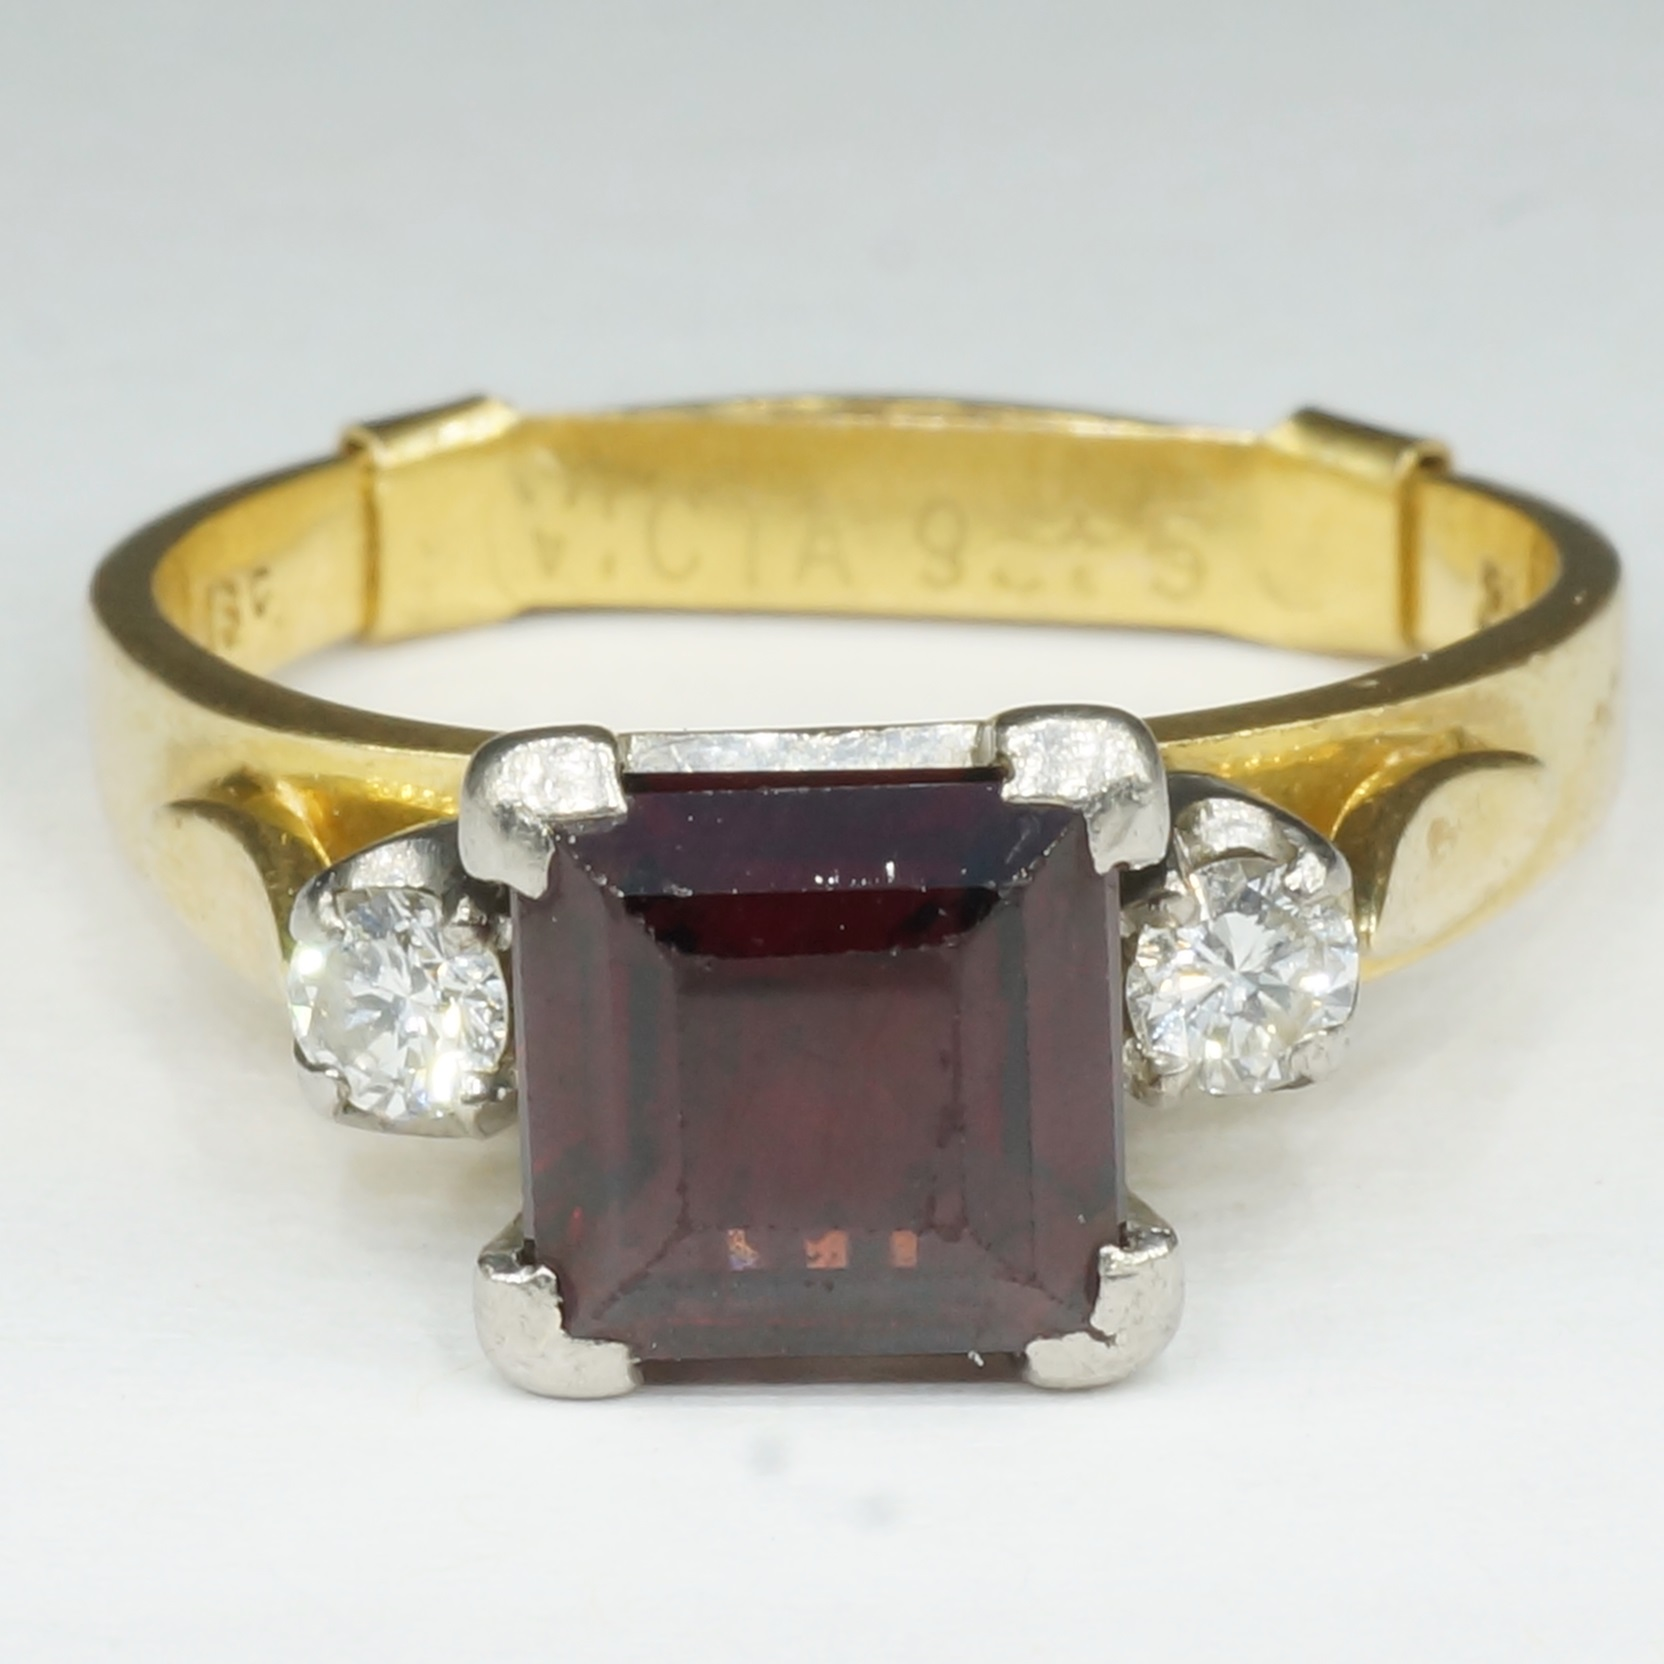 '18ct Yellow Gold with White Gold Settings Carre Cut Garnet and Diamonds '